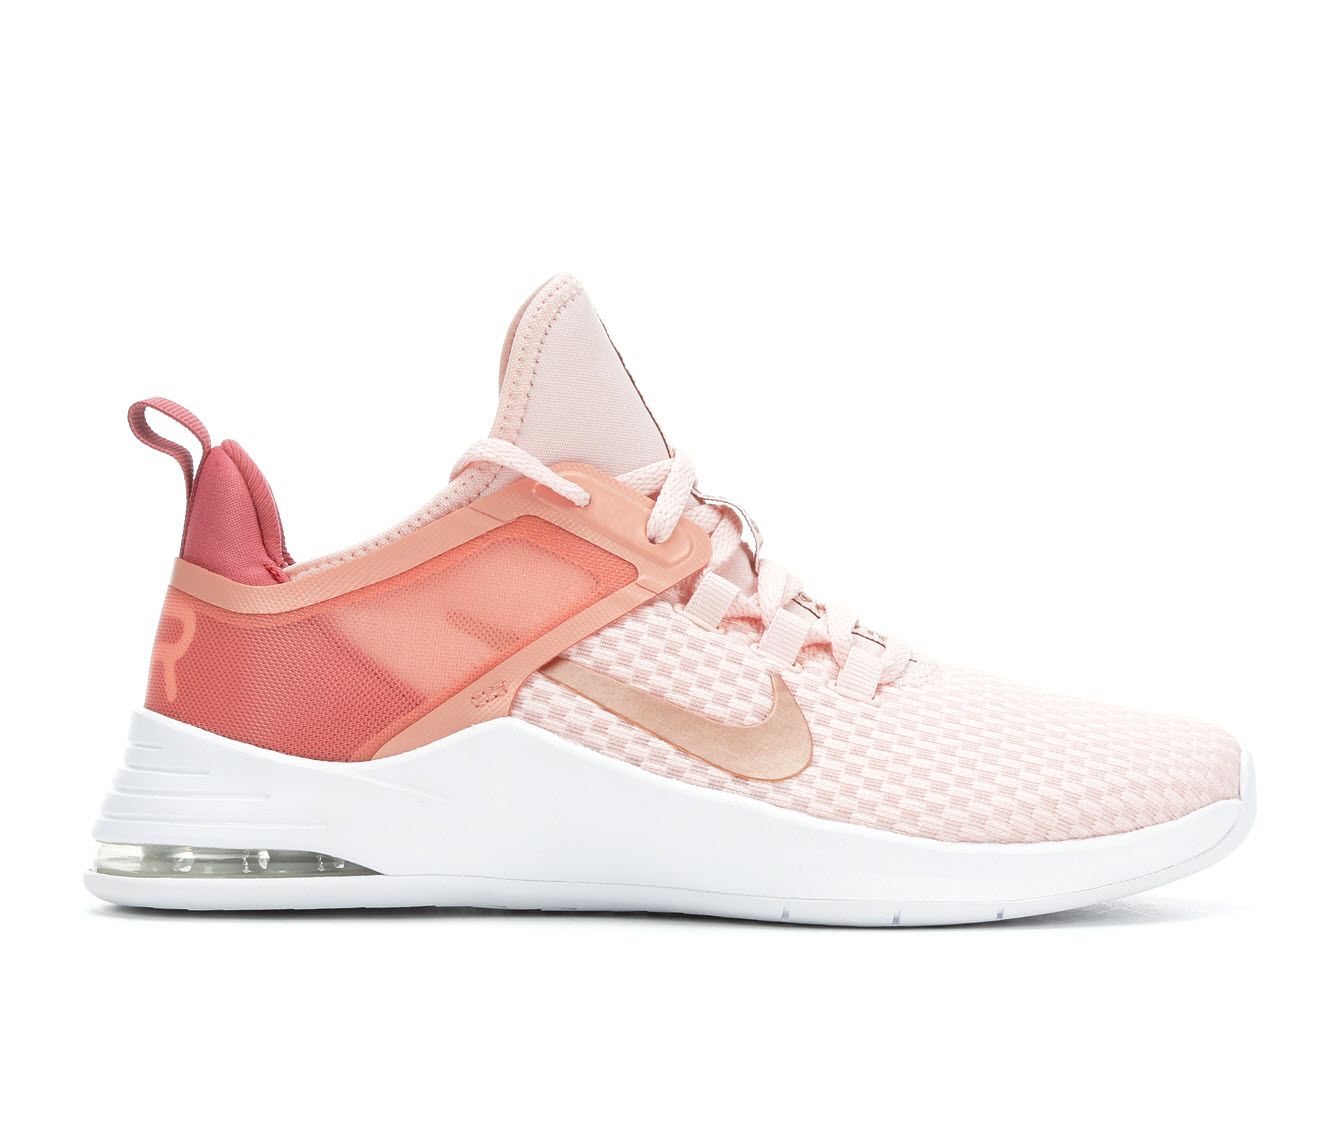 Nike Air Bella TR 2 Women's Athletic Shoe (Pink)